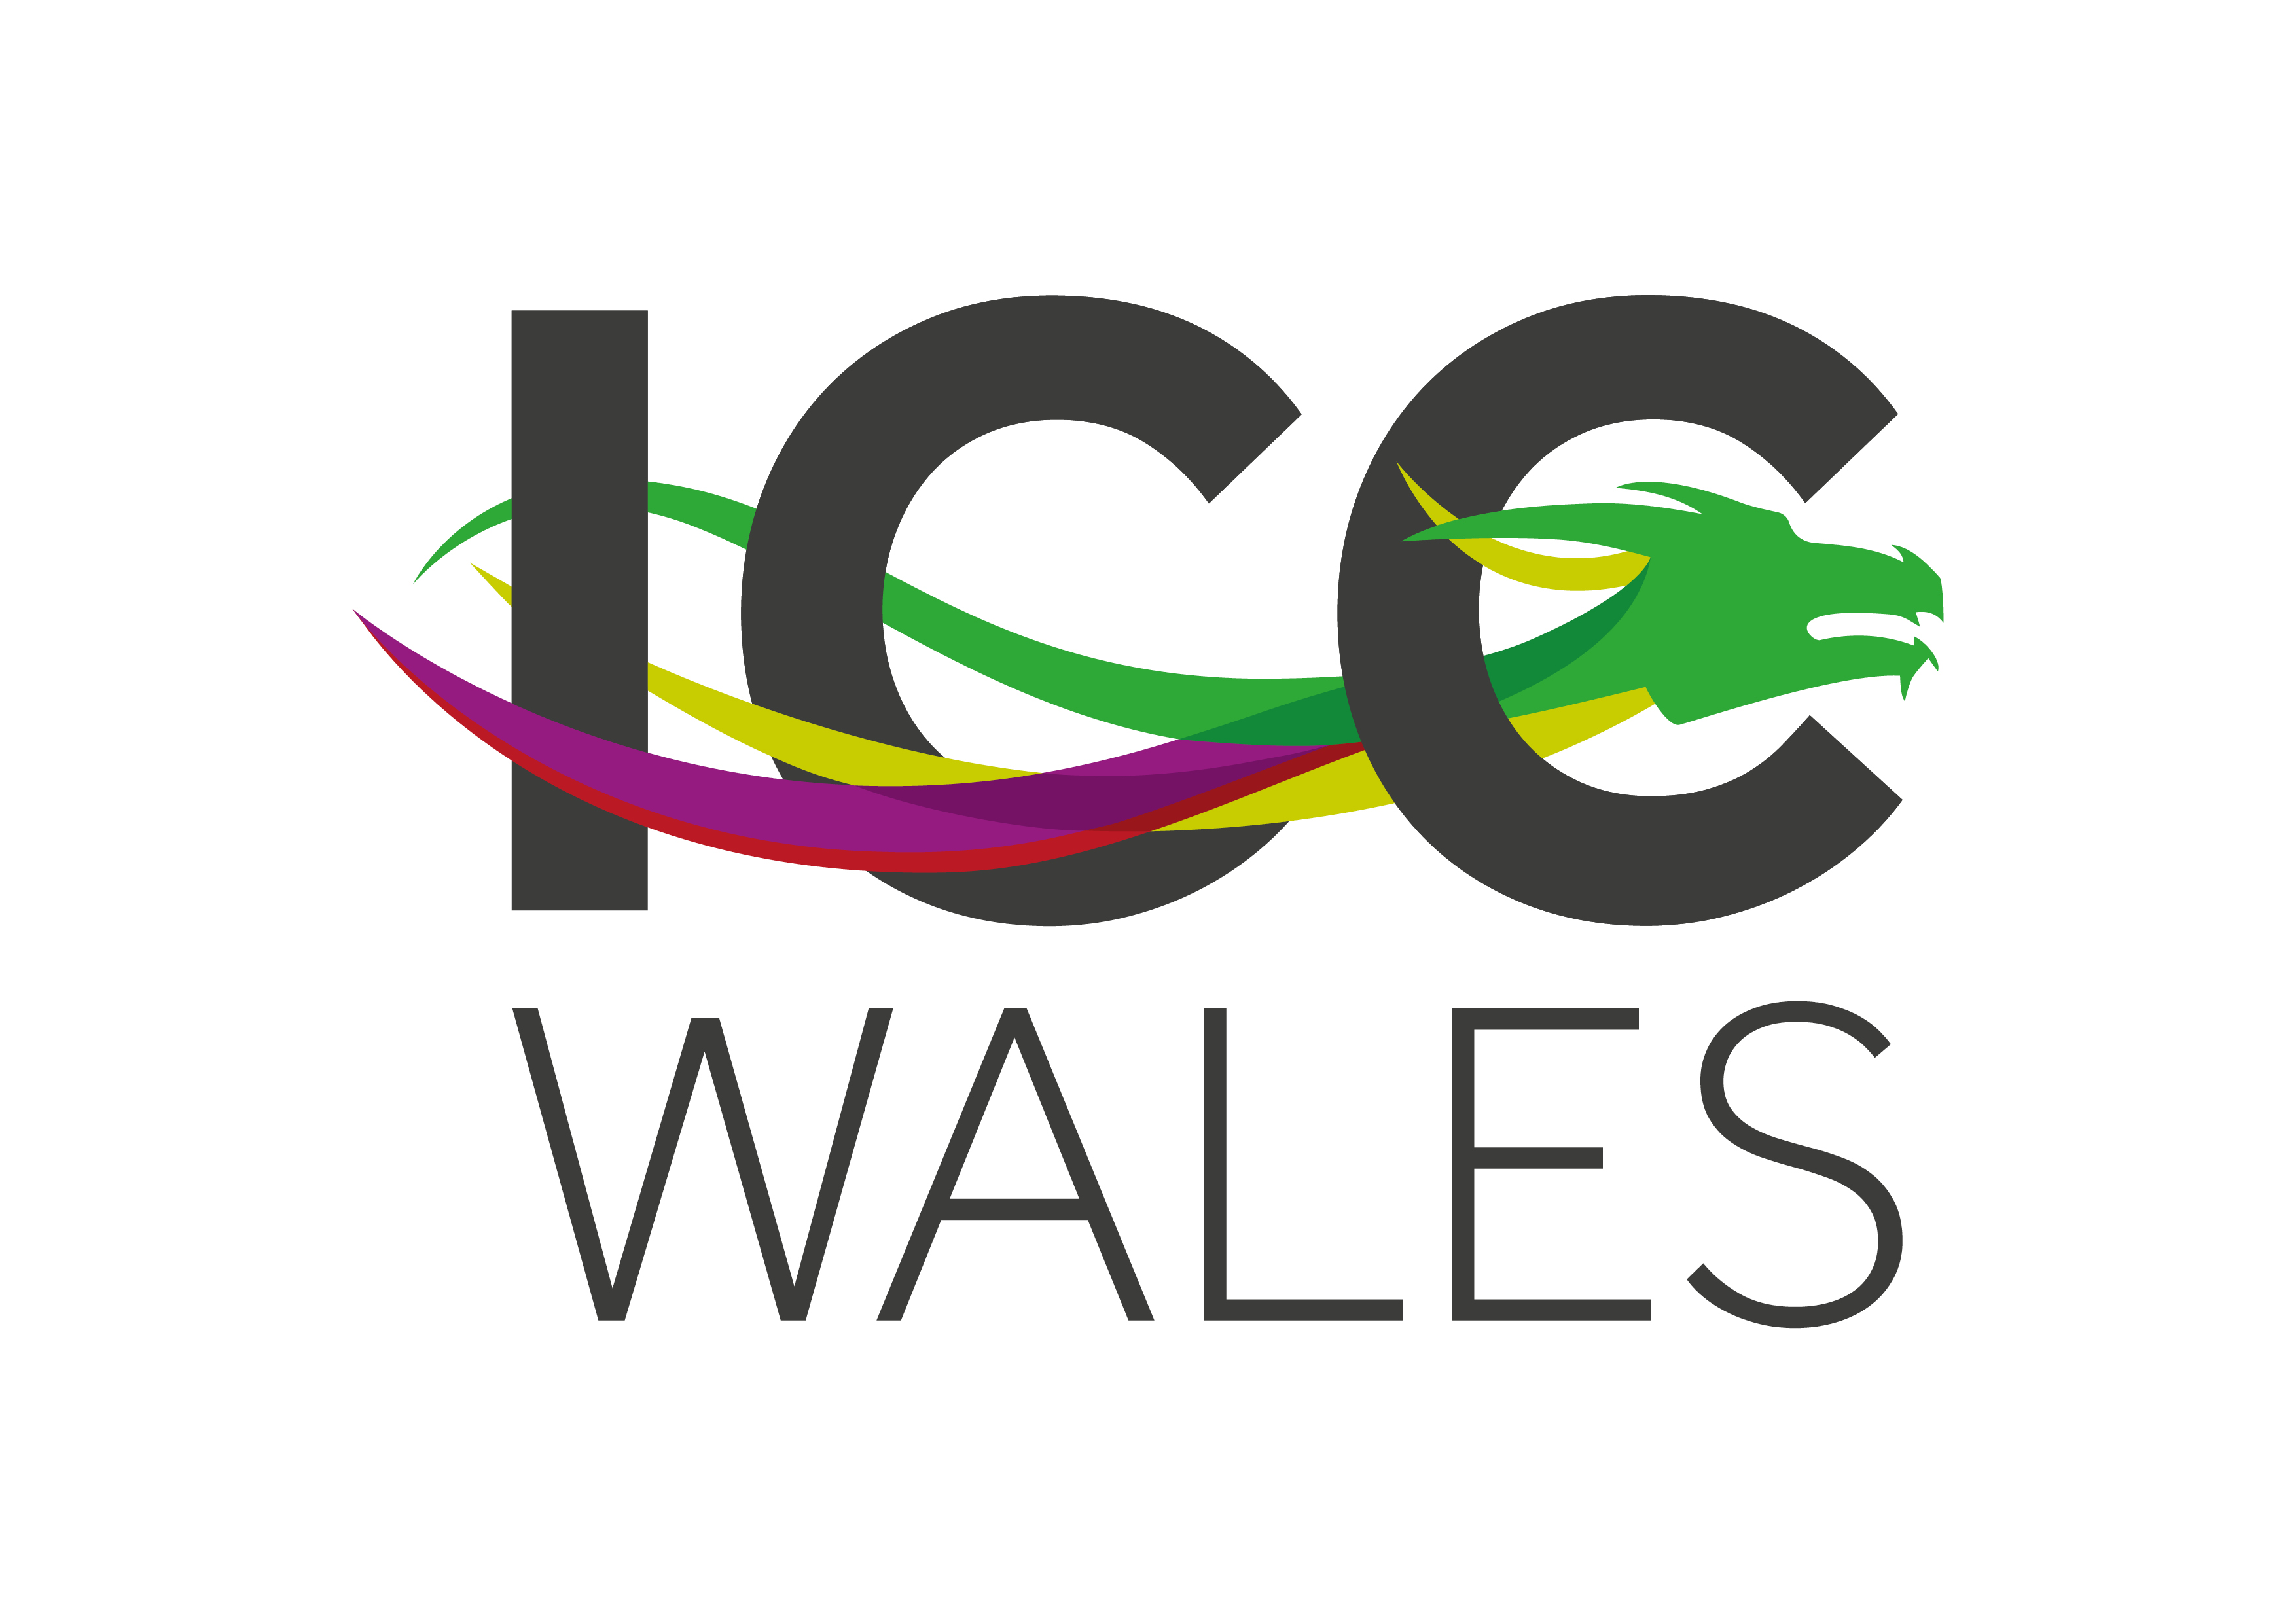 ICC Wales exhibits for first time at International Confex header internal